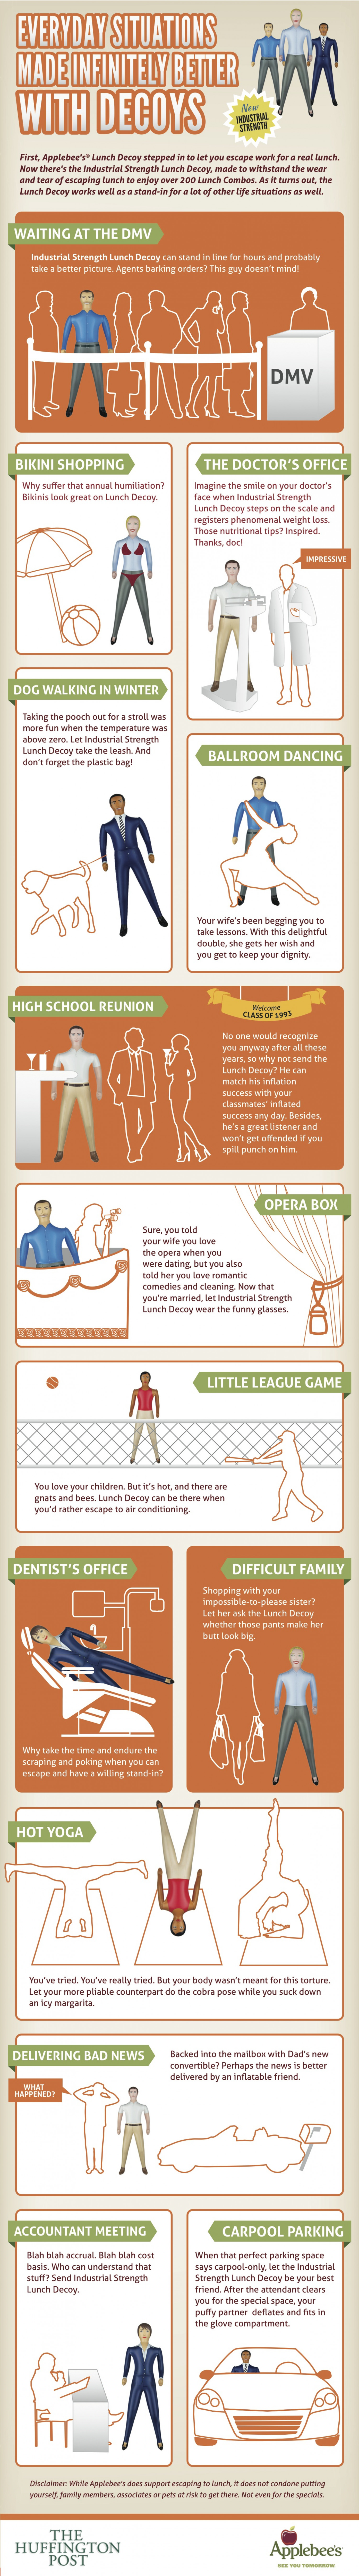 Everyday Situations Made Infinitely Better with Decoys Infographic